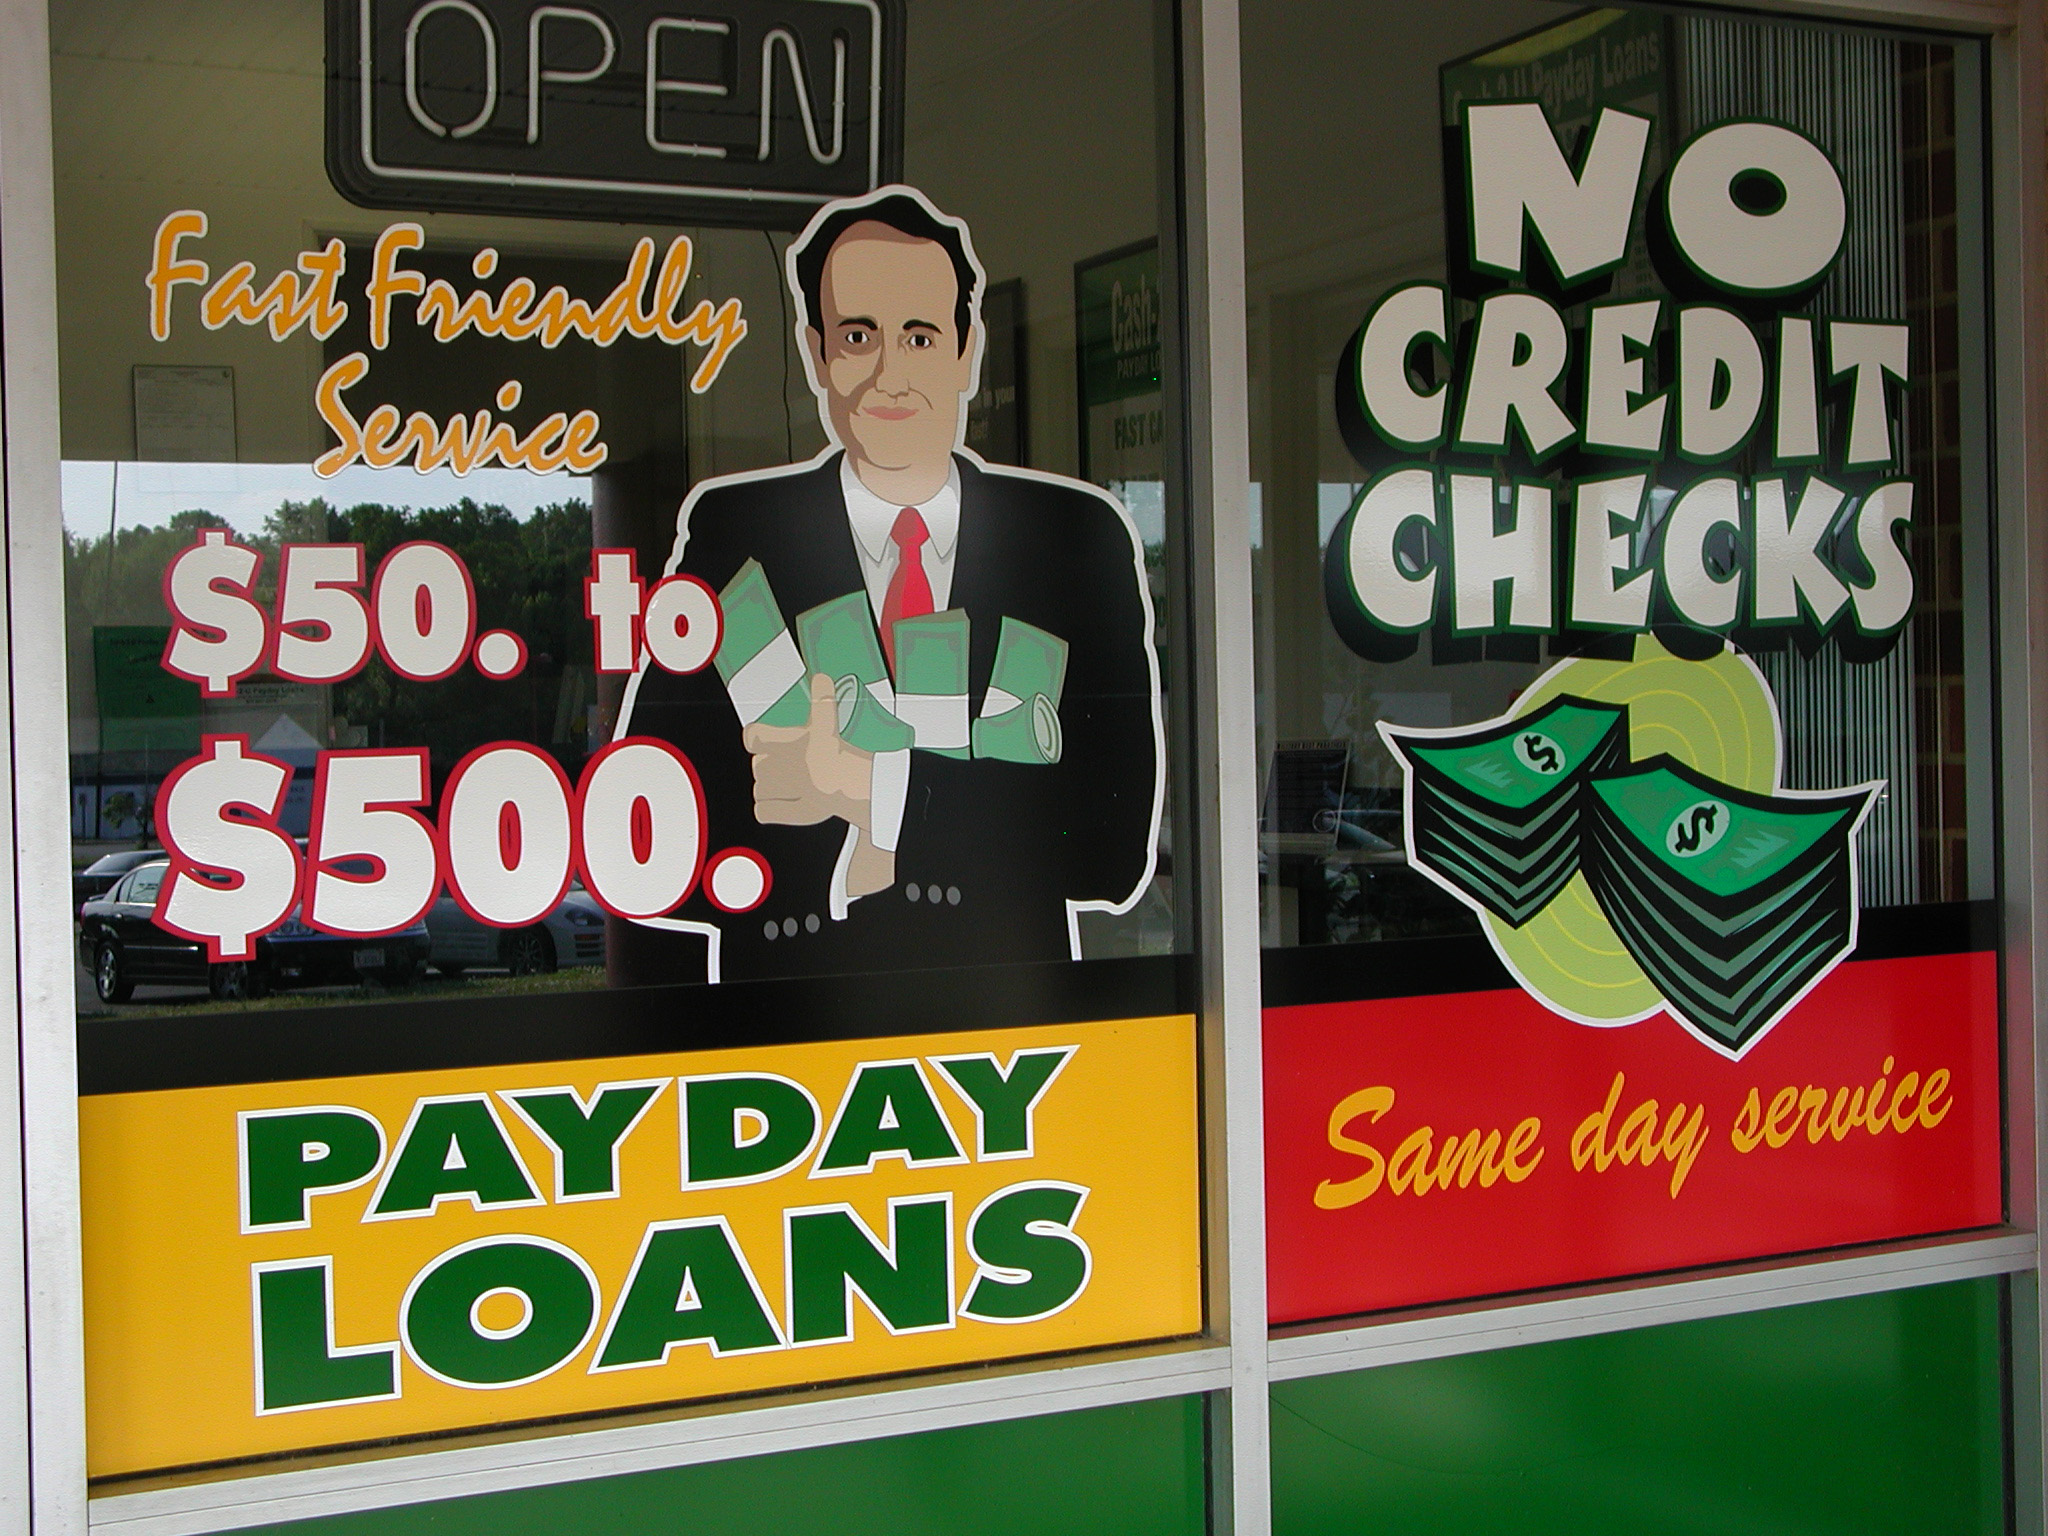 payday loans, corruption, Alabama House Financial Services Committee, Alabama Rising, Consumer Federation of America, criminal lending, high-interest lending, predatory finance, predatory lenders, postal banking, cooperative community financial services